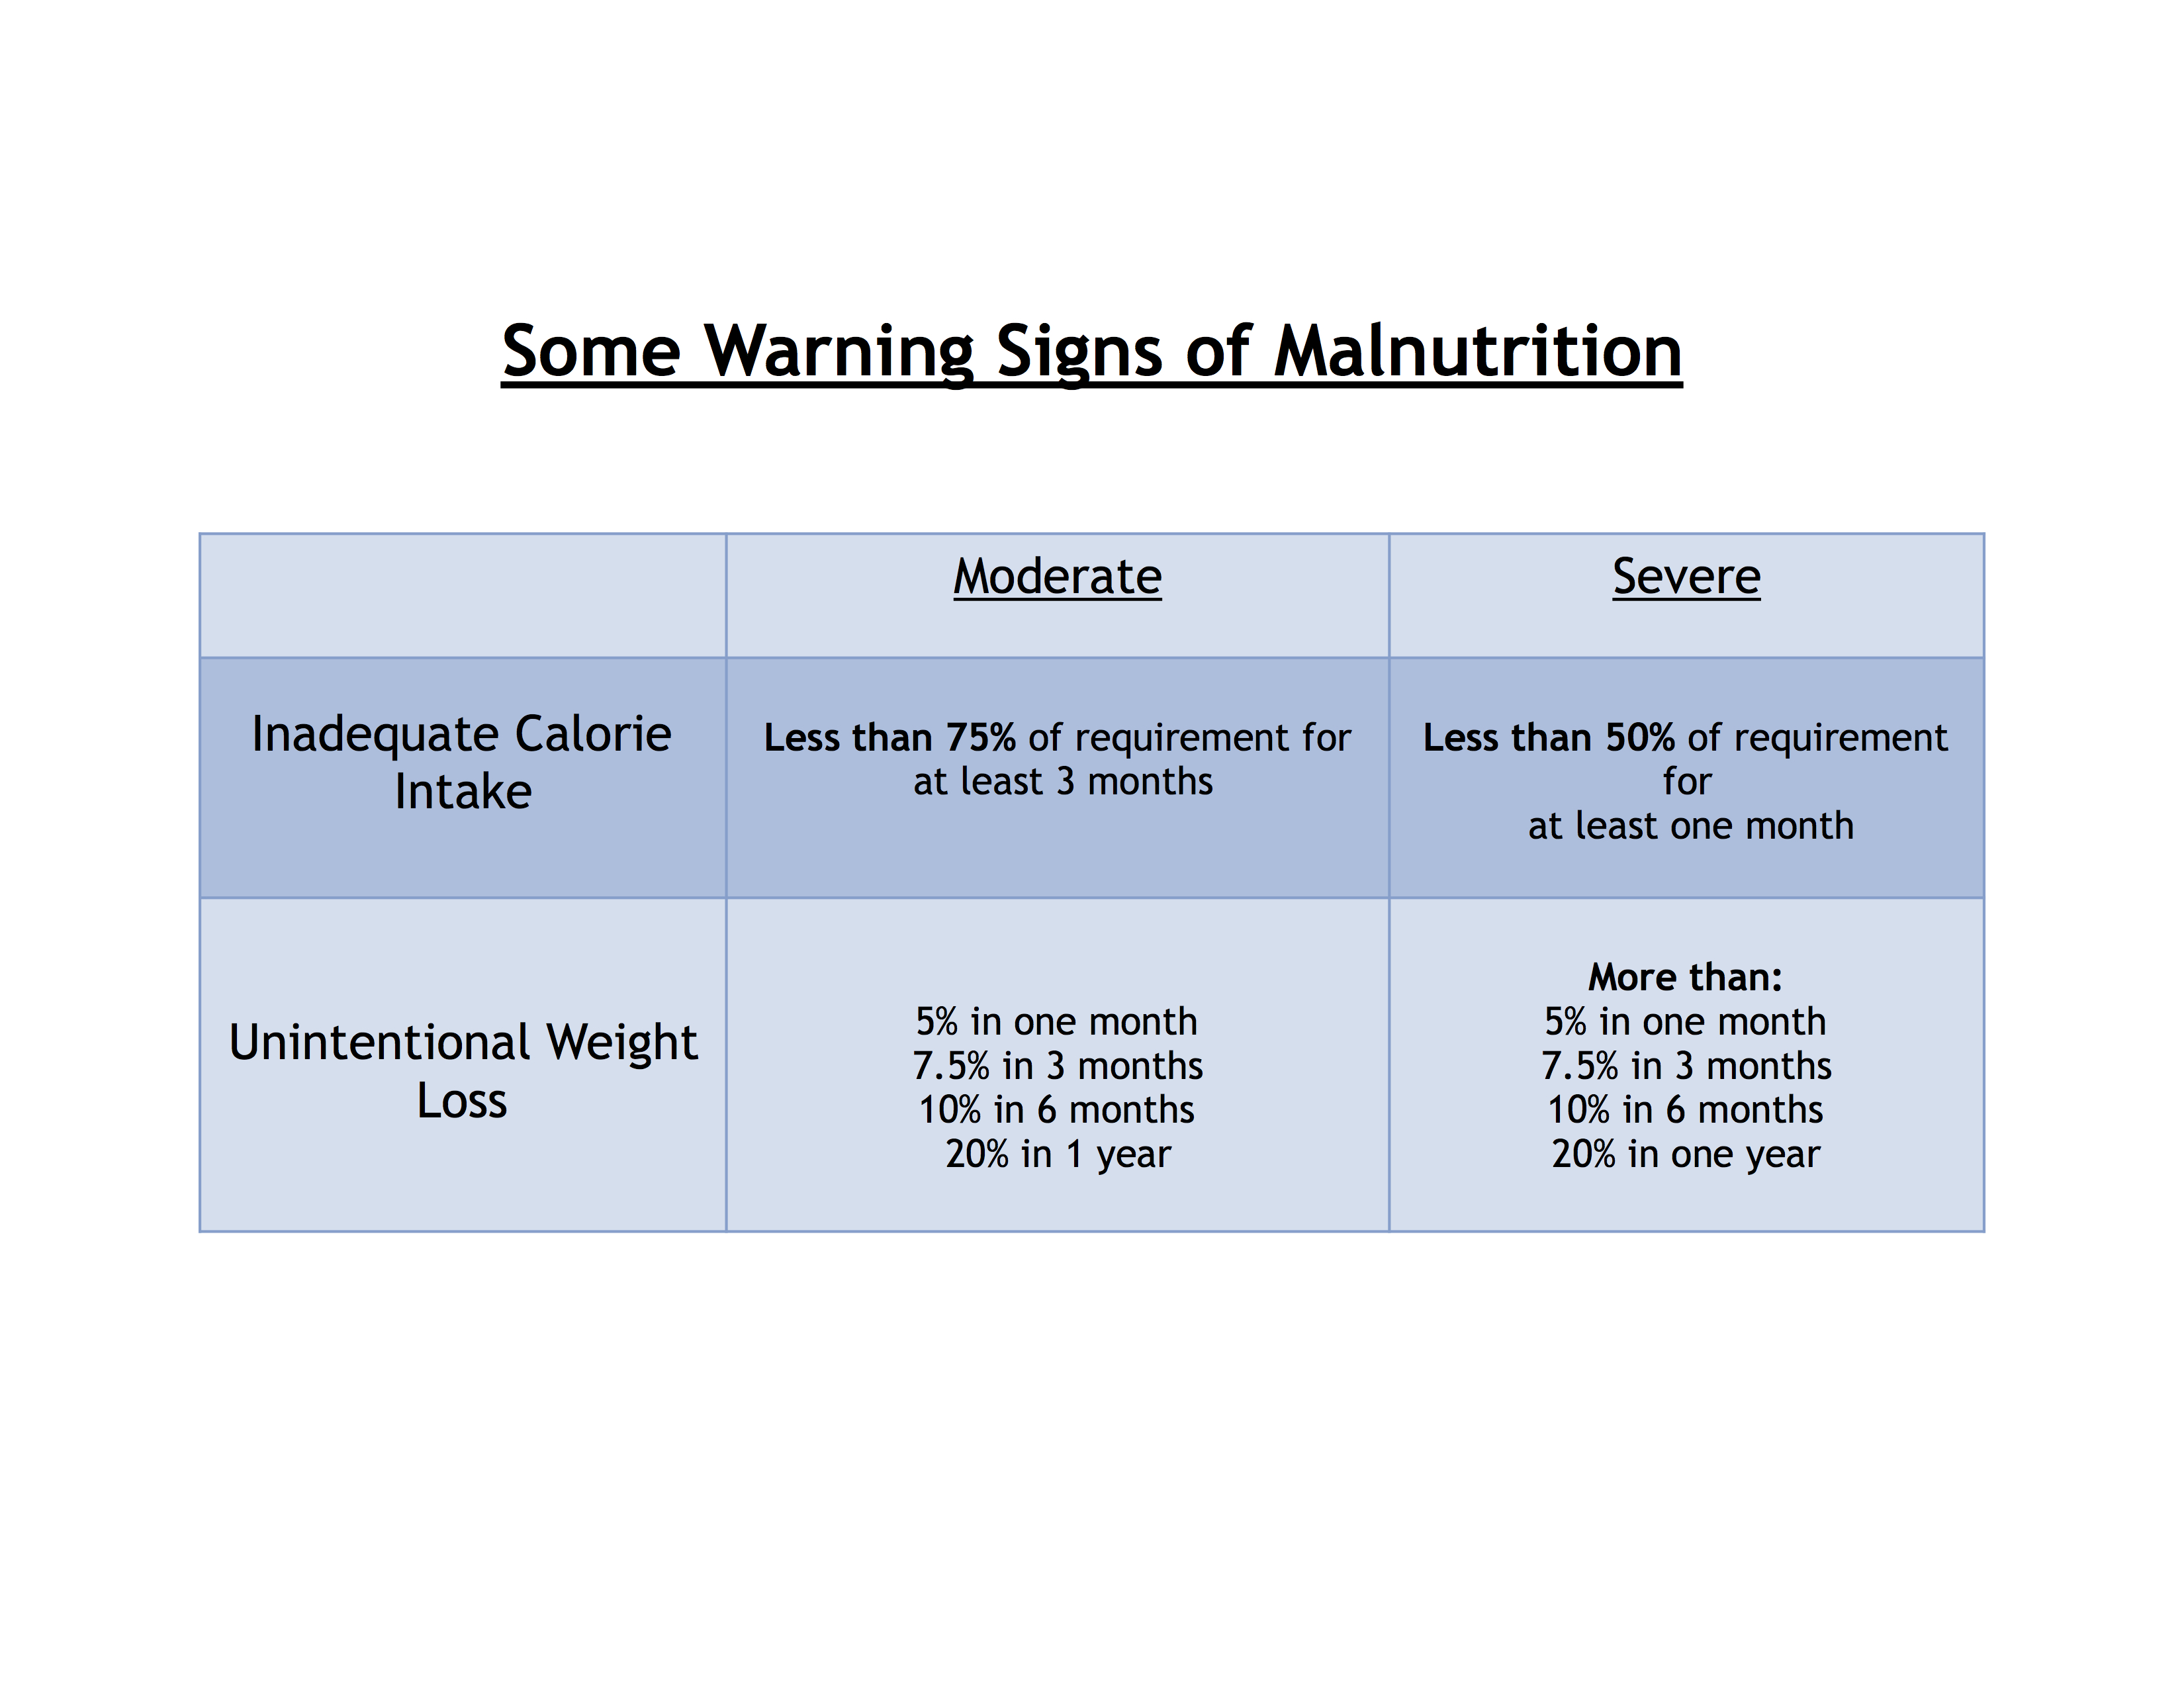 Some Signs of Malnutrition Table